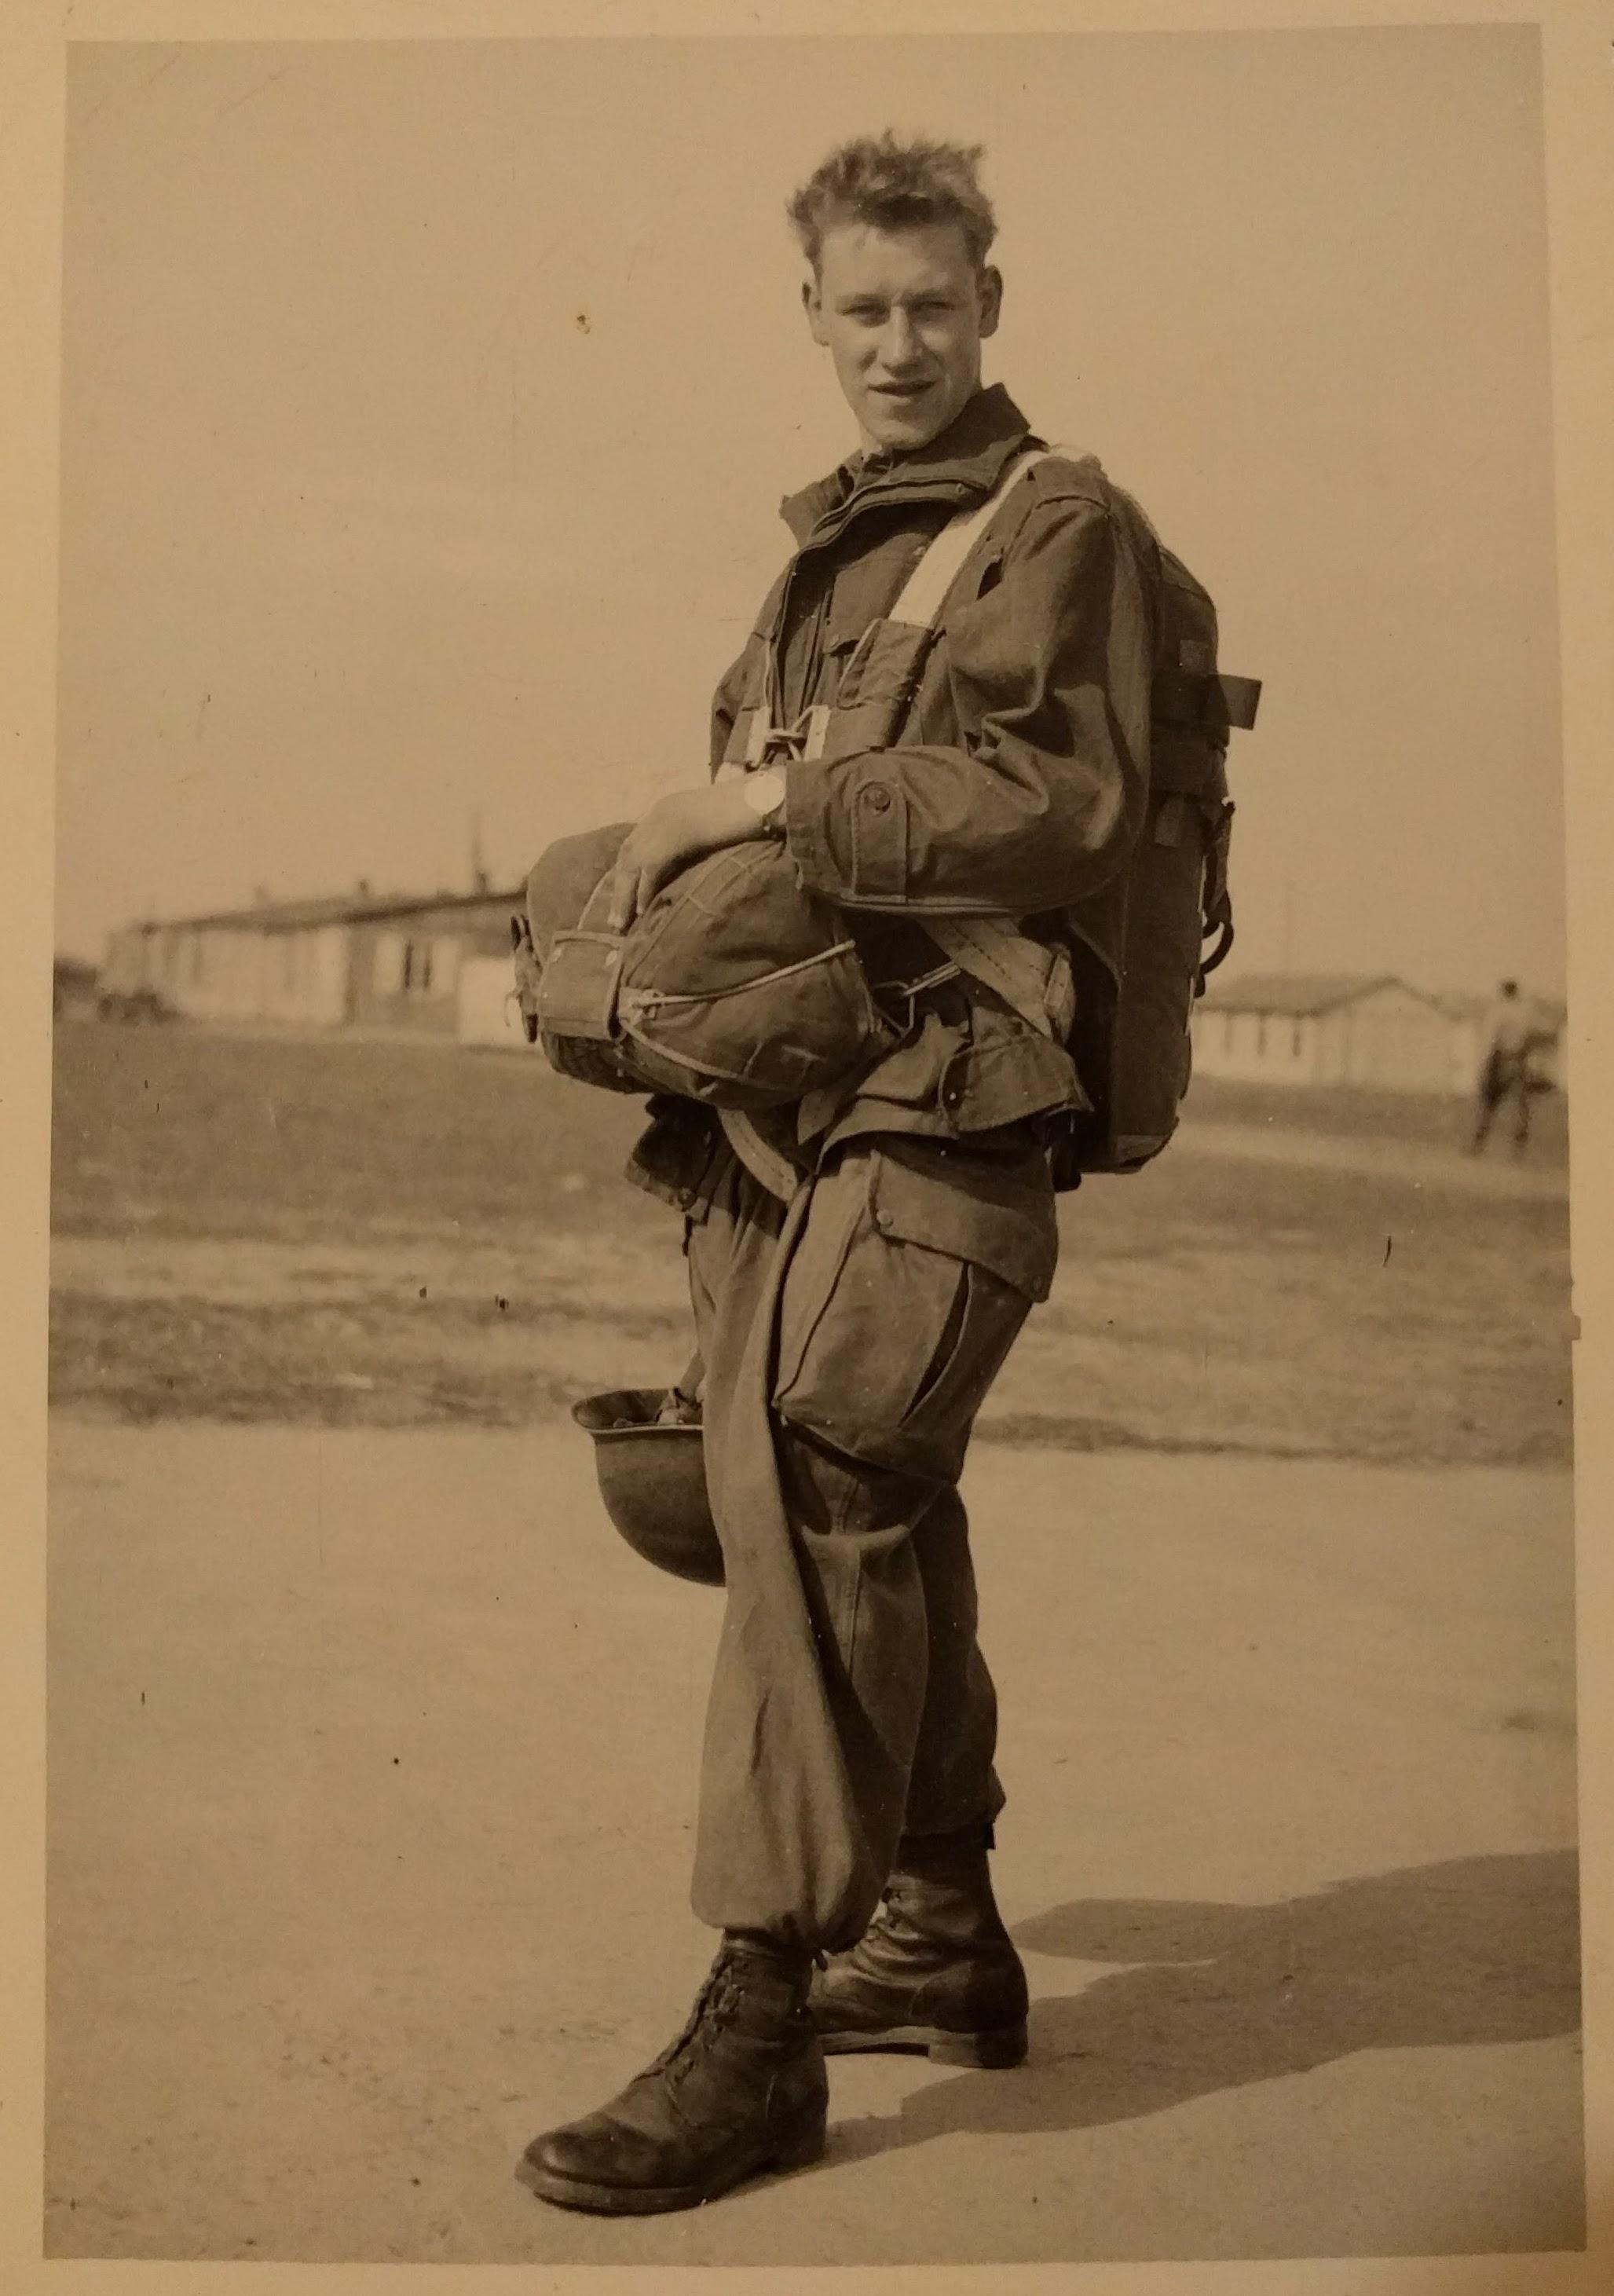 Picture French Tonton Maternal Uncle Algerian War My A French Paratrooper Algerian War Uncle My A French Paratrooper French baby Uncle In French